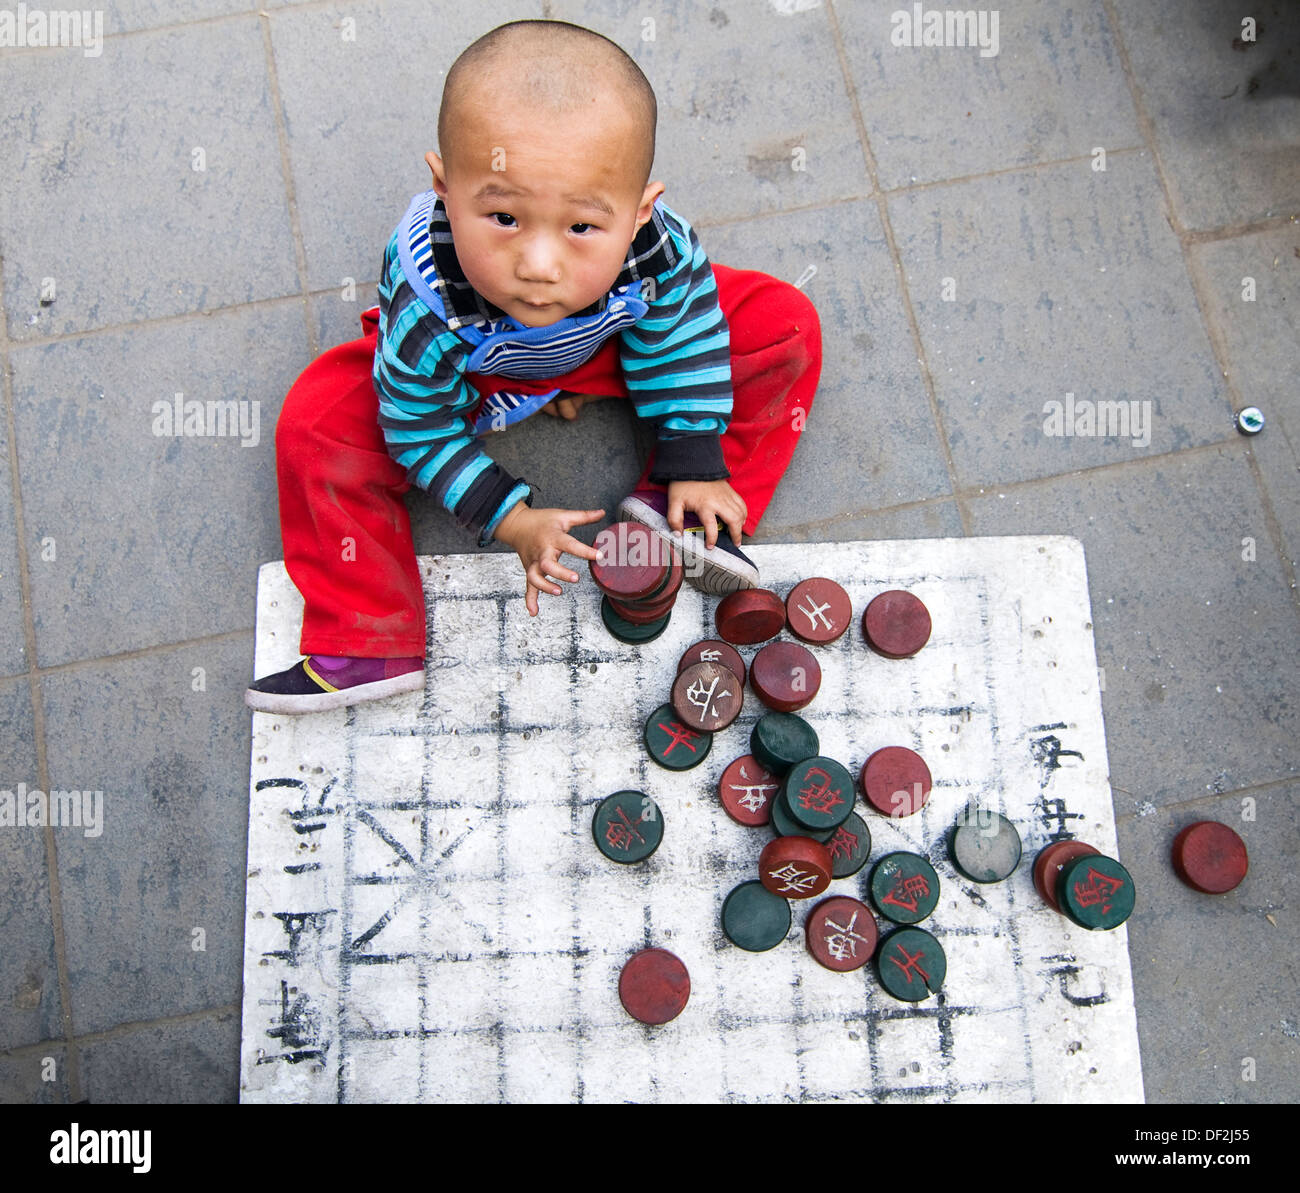 A boy playing with Xiangqi ( Chinese chess) board & soldiers. - Stock Image